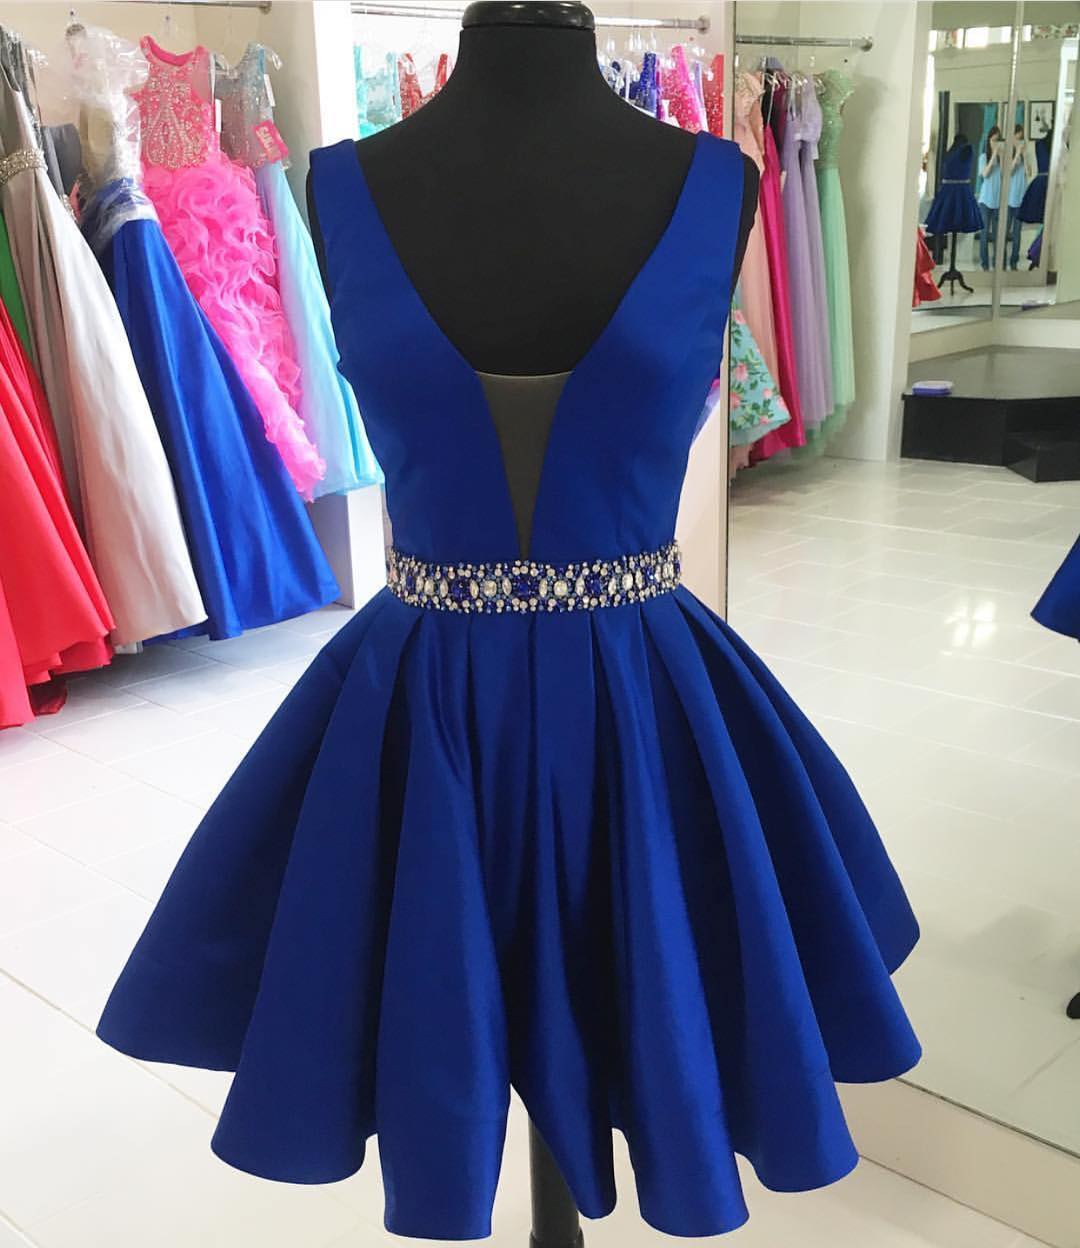 6a34a1bea89f sexy v neck prom short dresses, satin gowns,royal blue homecoming dress, short cocktail dress